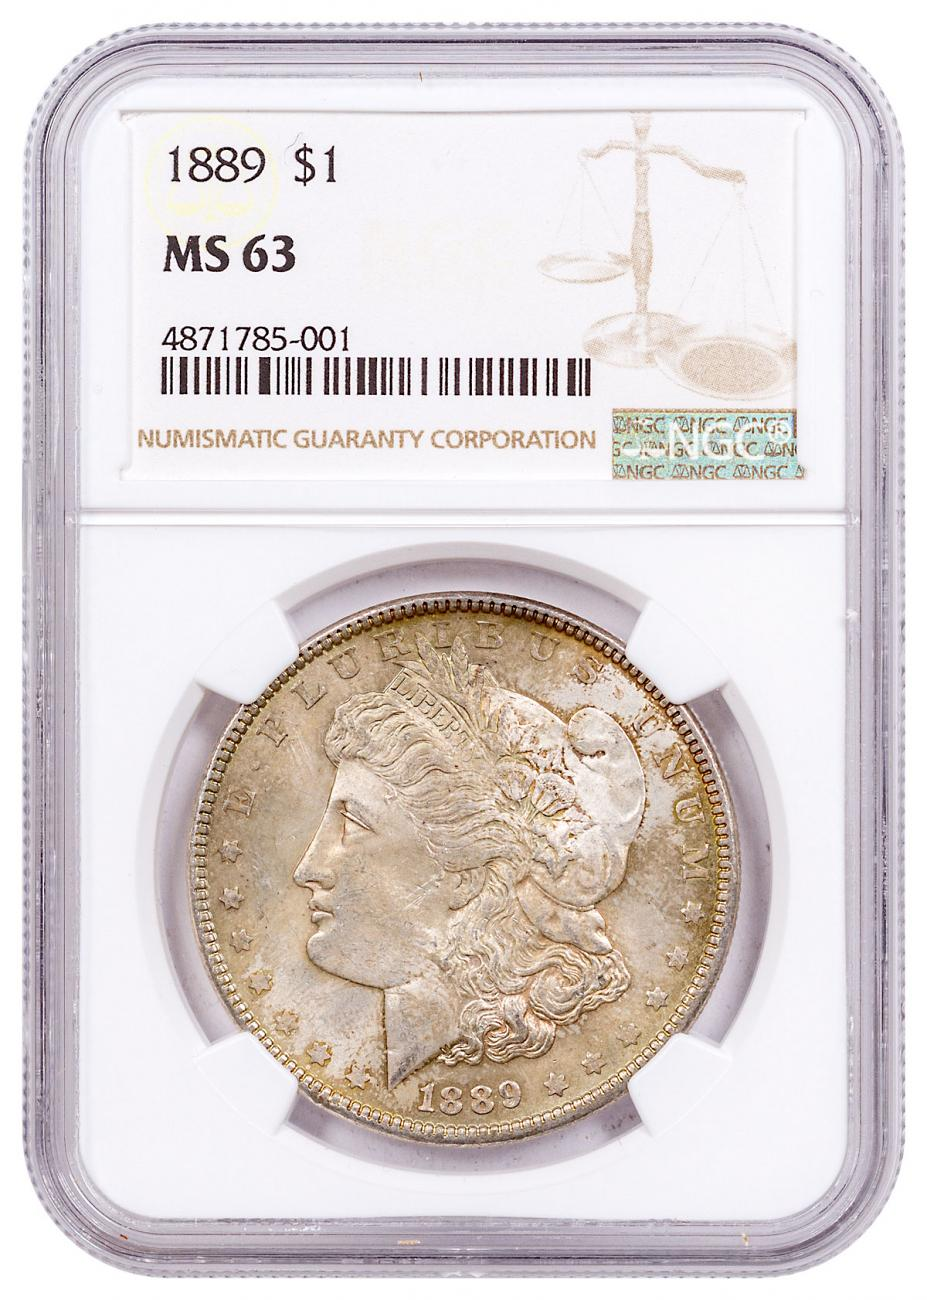 1889 Morgan Silver Dollar Toned NGC MS63 CPCR 5001